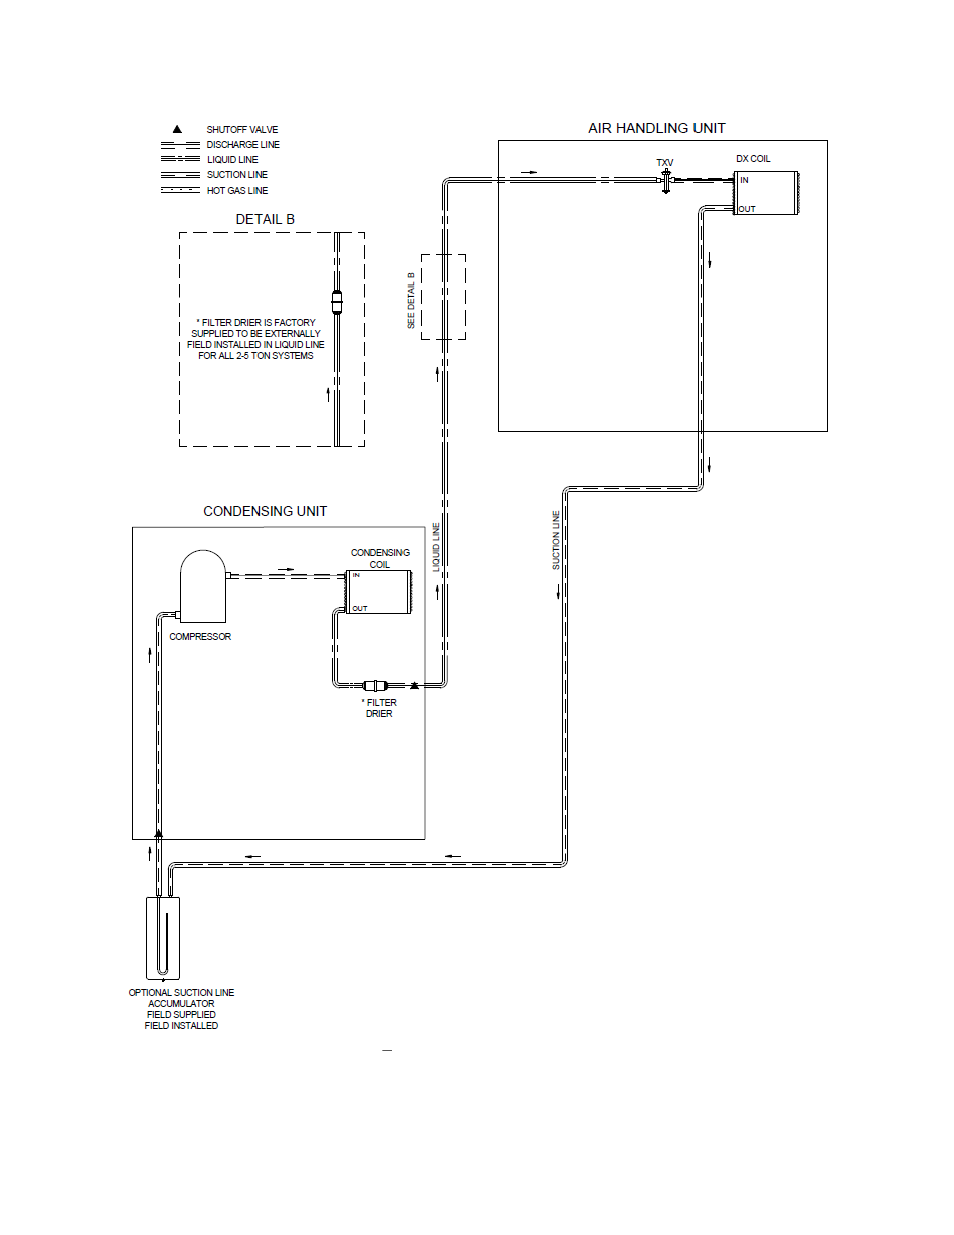 Refrigerant Piping Diagrams  Figure 11  U2013 A  C Only Piping  Ahu Above Cu